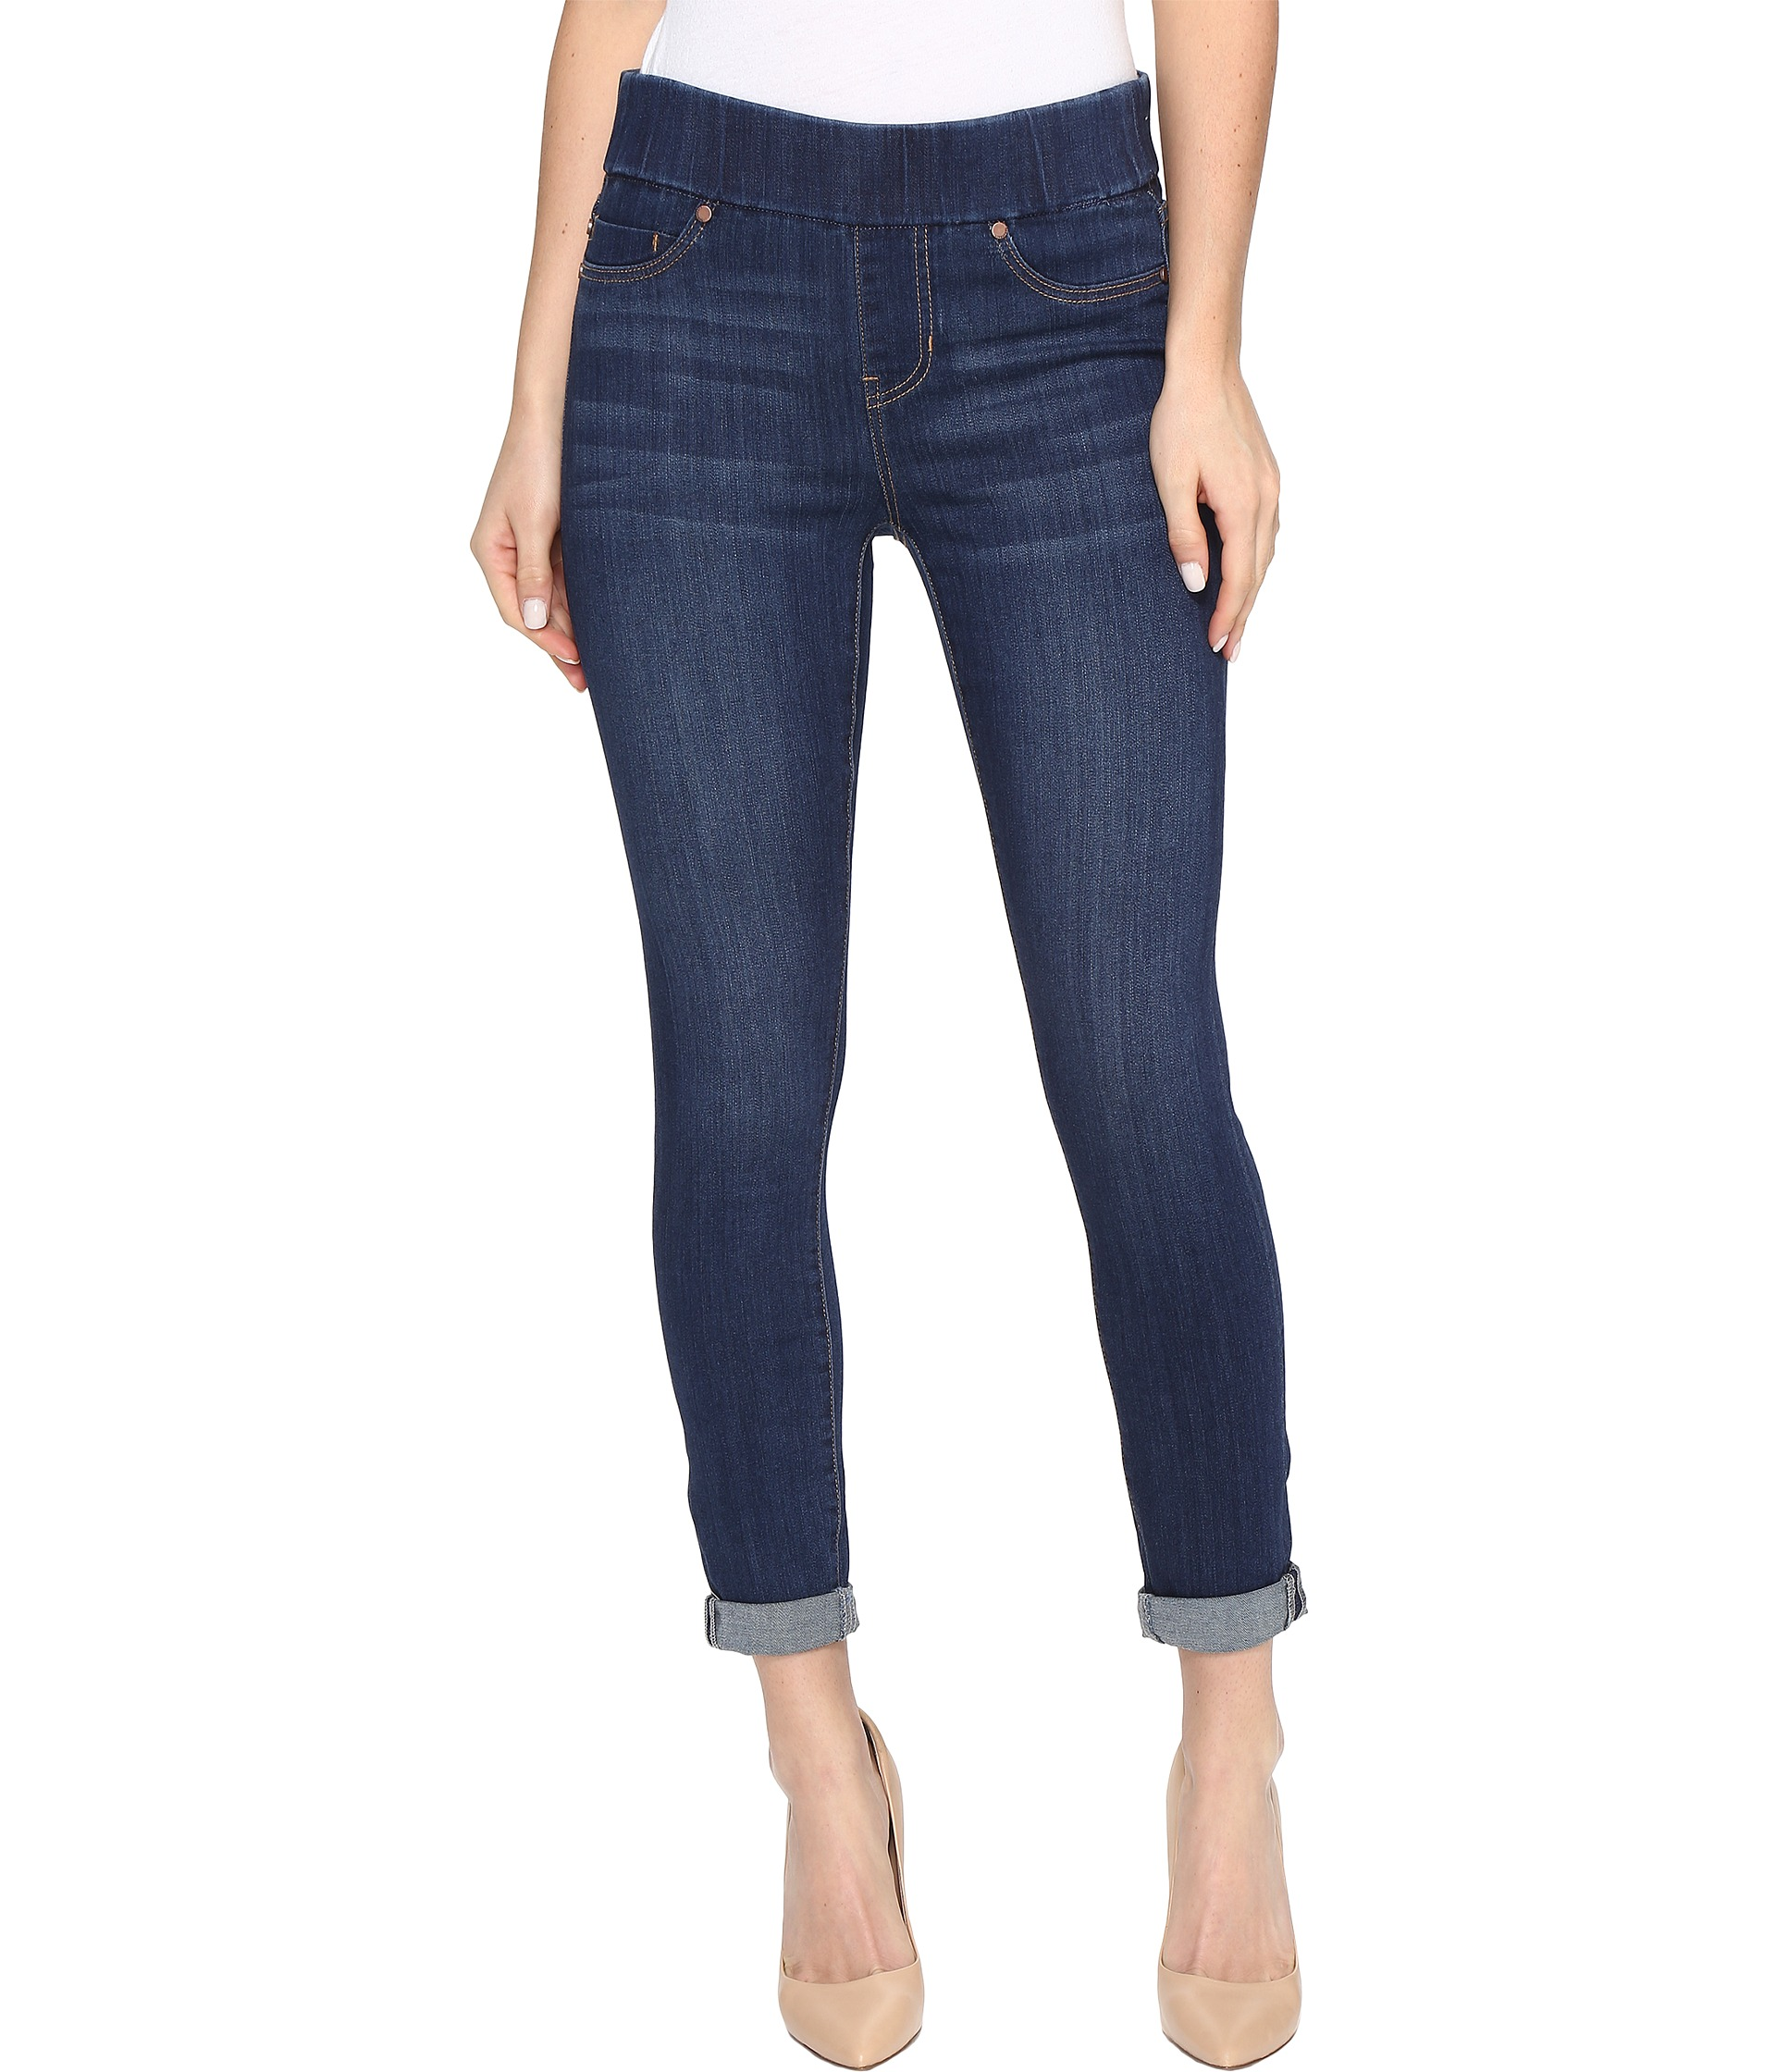 Shop our variety of women's cropped and capri jeans, available at Dillard's.